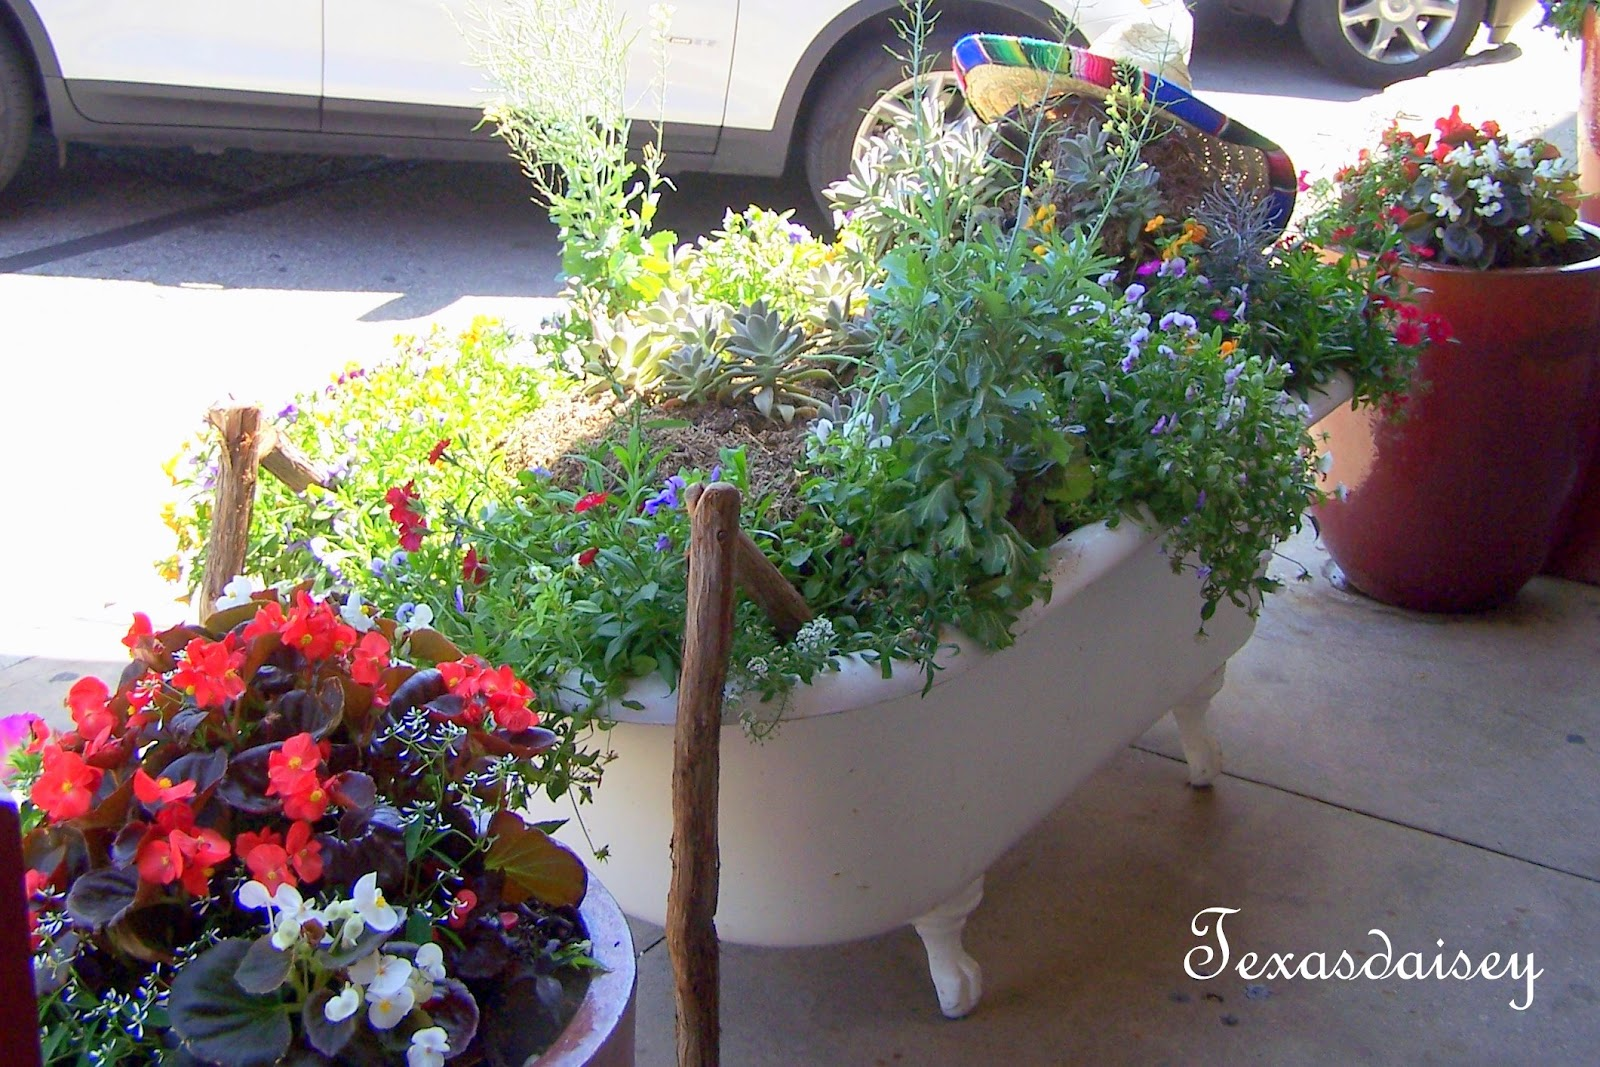 Container Garden Ideas: Texasdaisey Creations: Container Garden Ideas